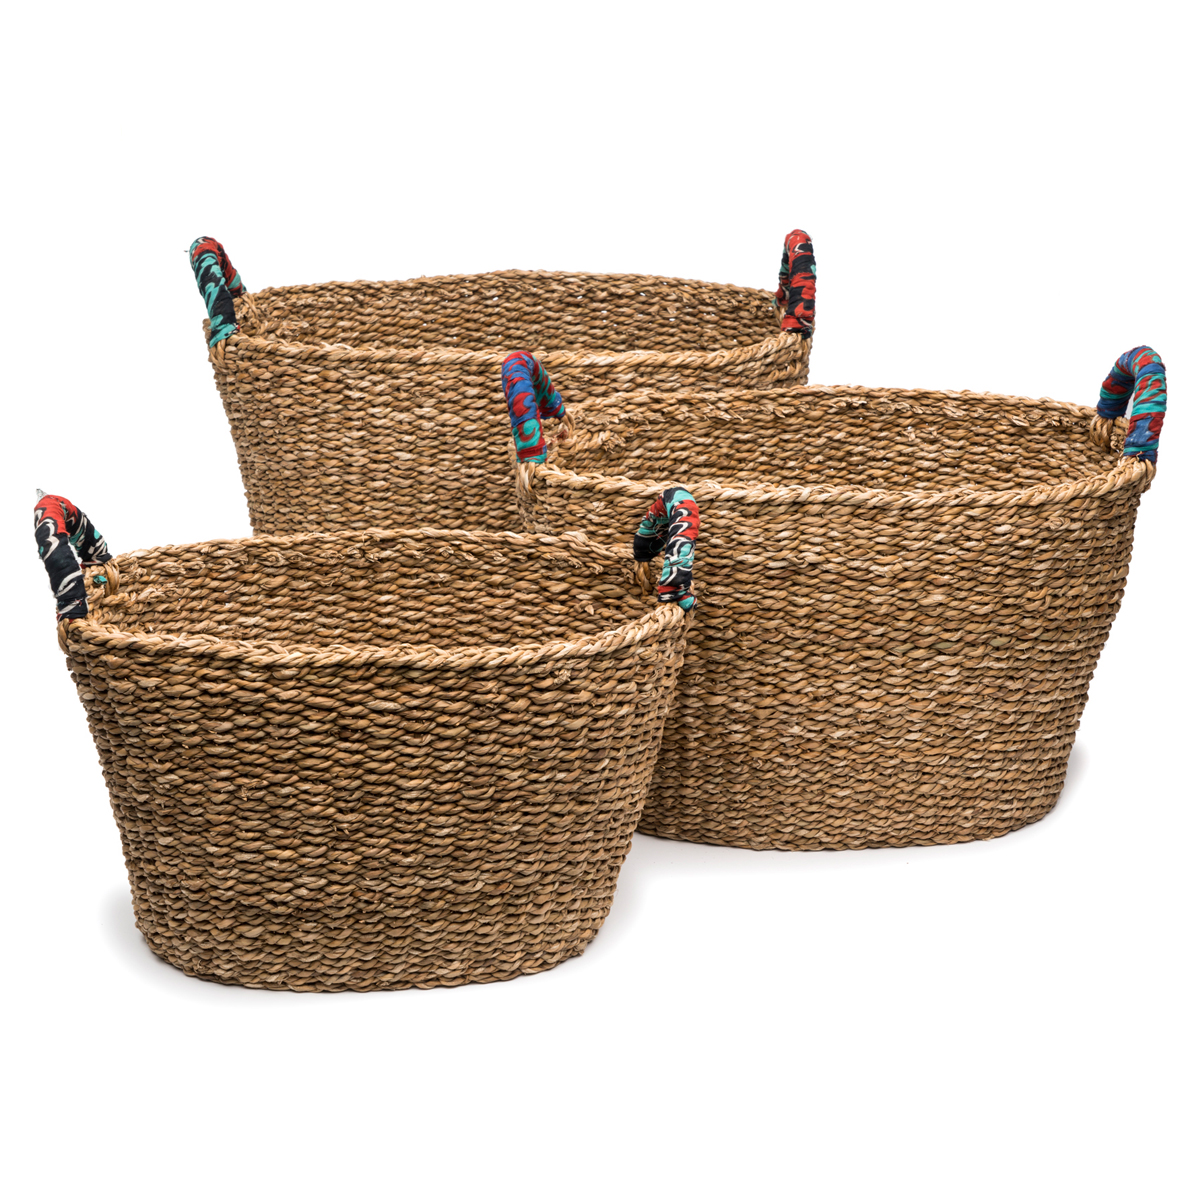 HBB213_Chindi_Handle_Baskets_Set.jpg